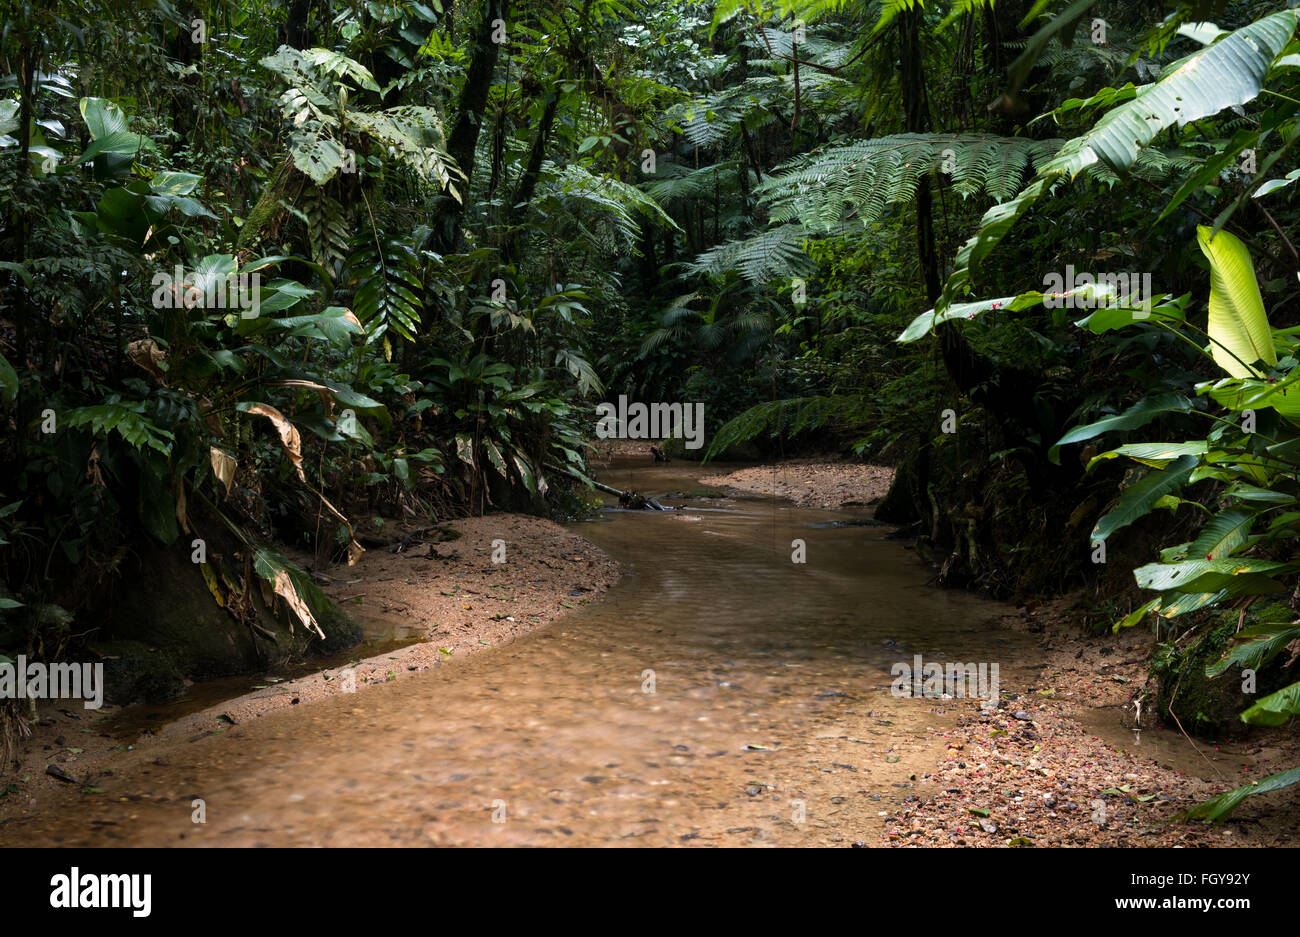 A secluded creek running through primary Atlantic Rainforest - Stock Image